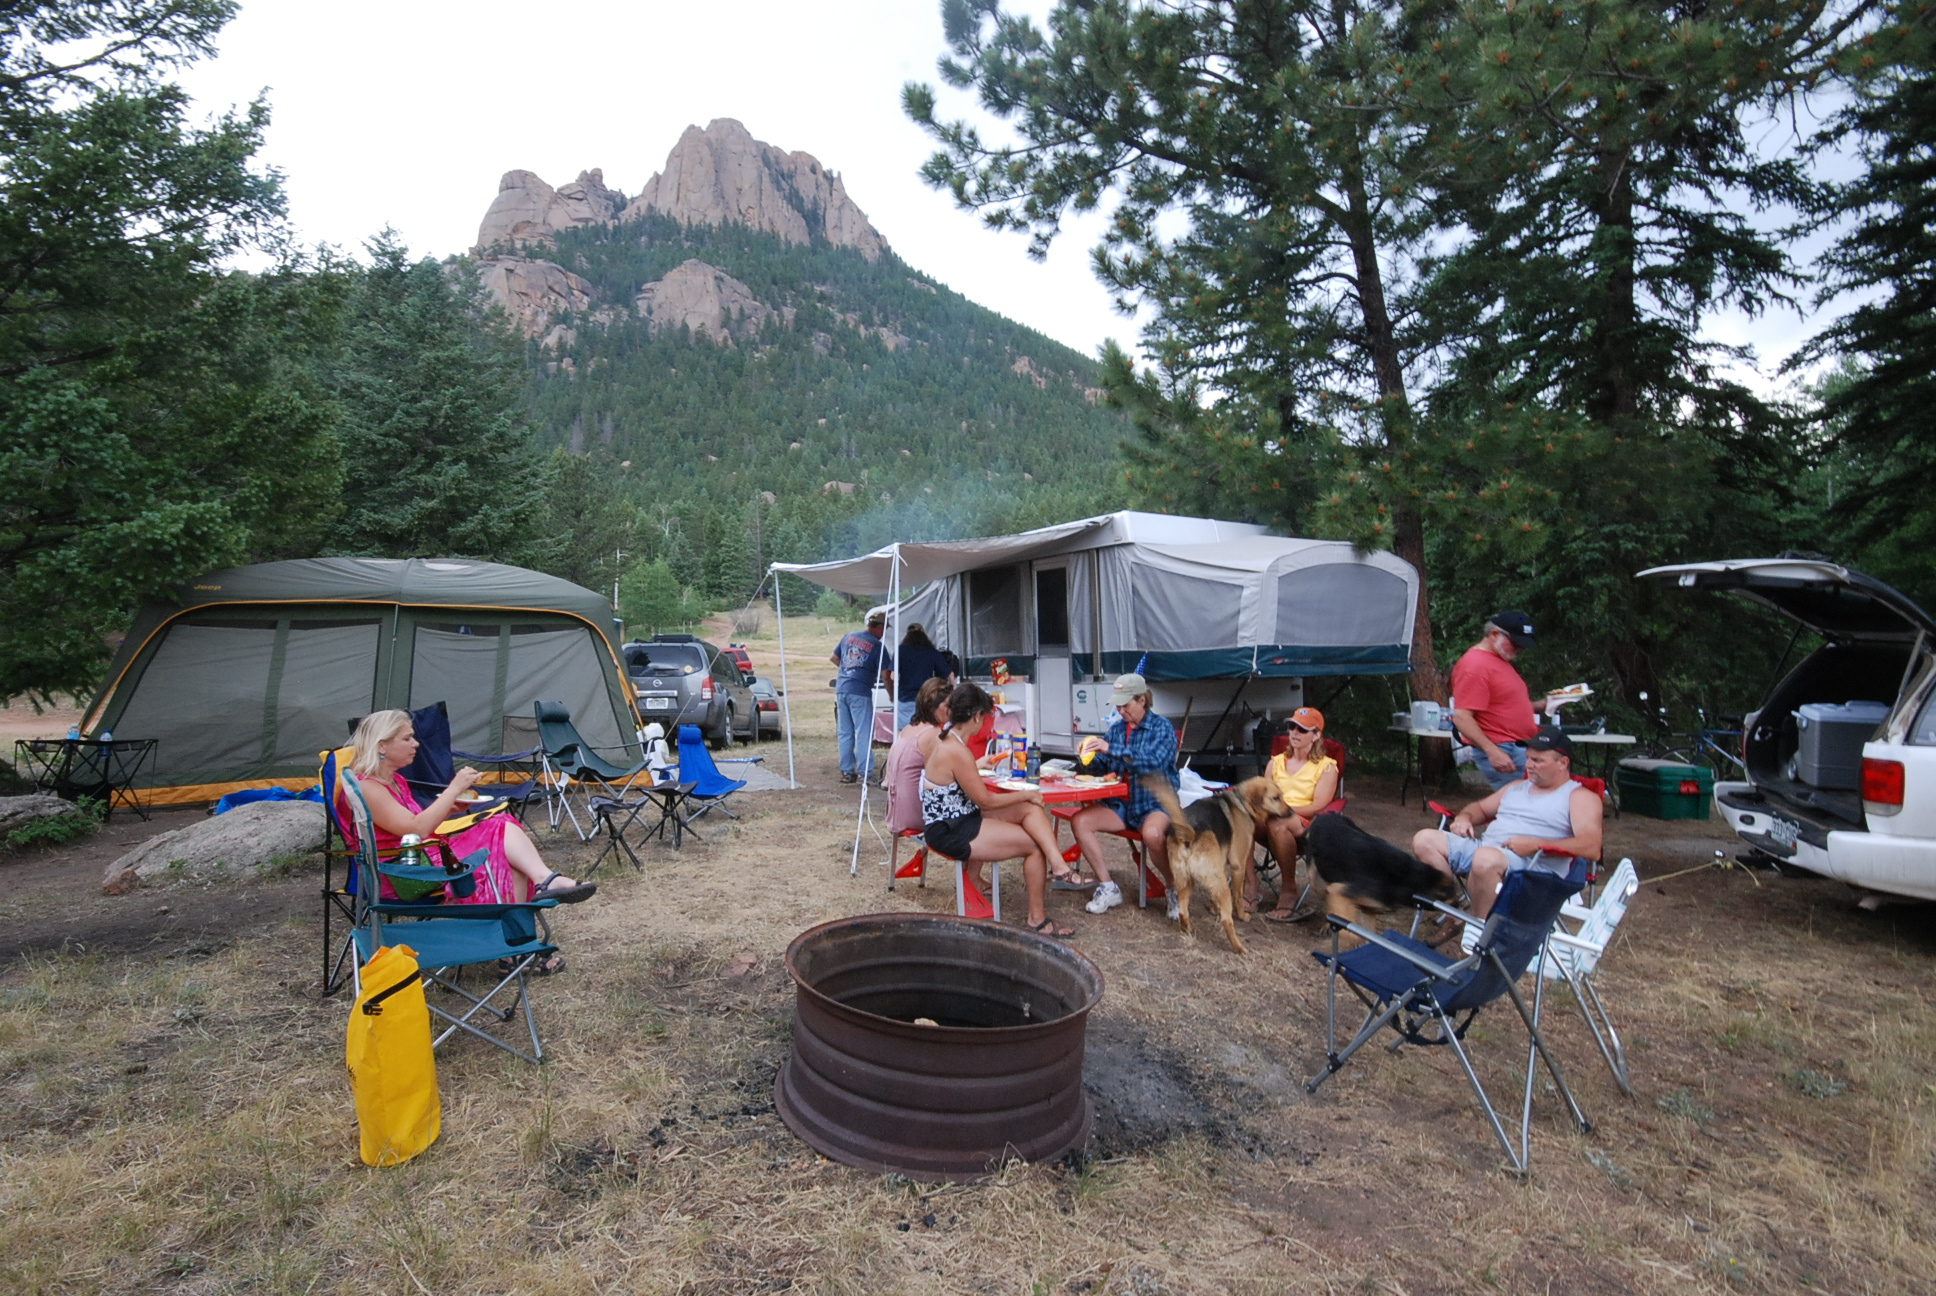 Photo: Camping near Evergreen, Colorado